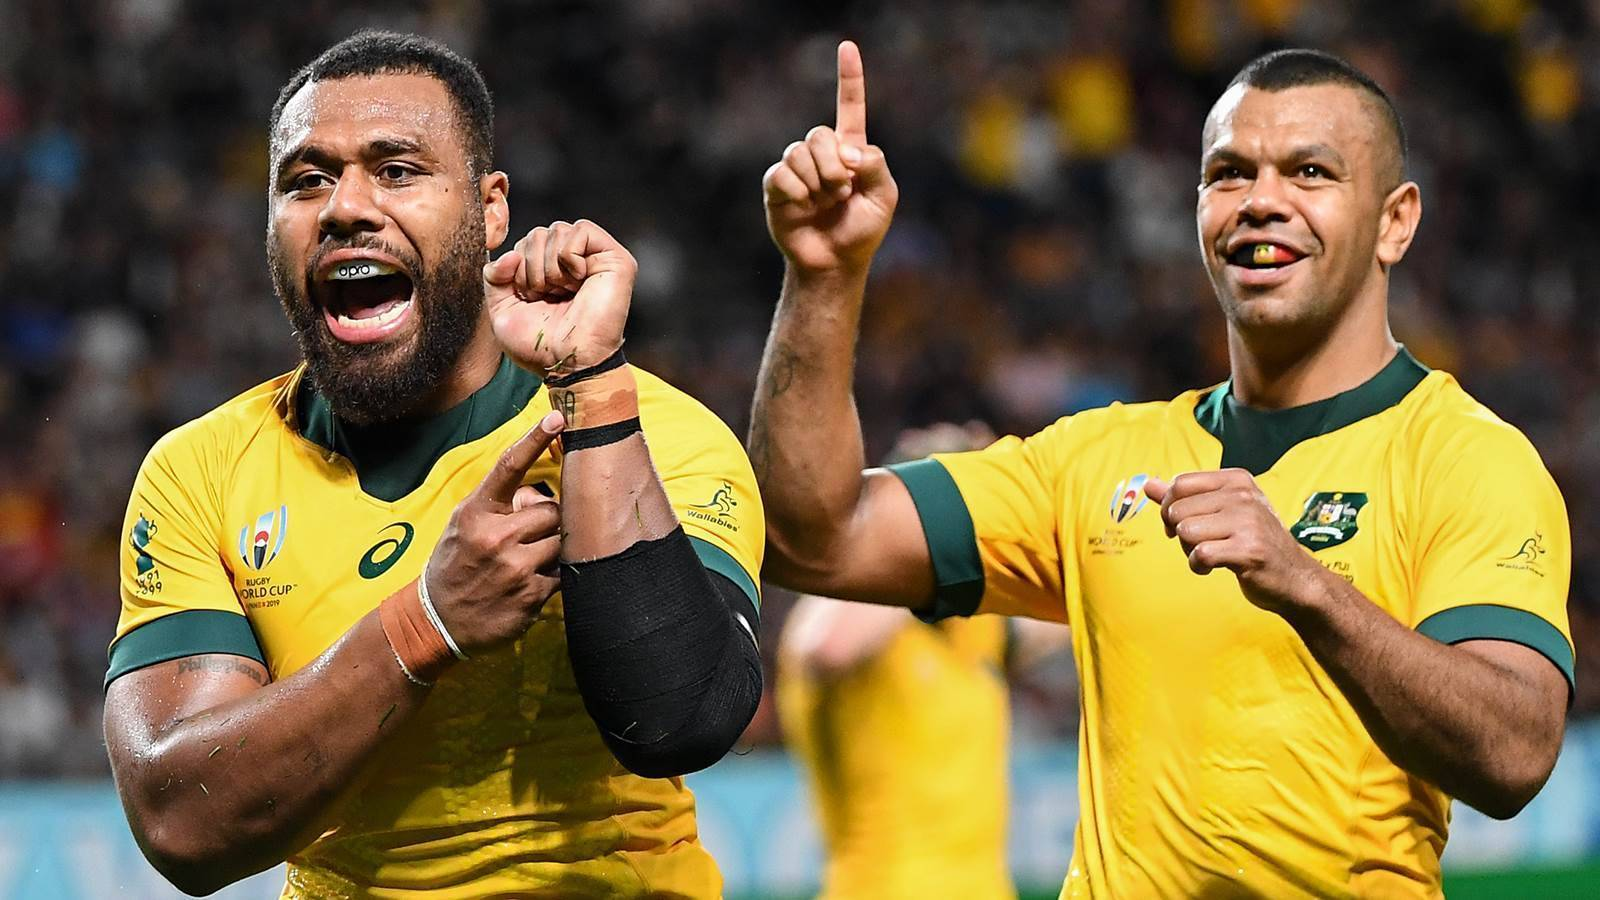 Wallabies And All Blacks Making Winning Starts Next Stop Wales And Canada Union Inside Sport